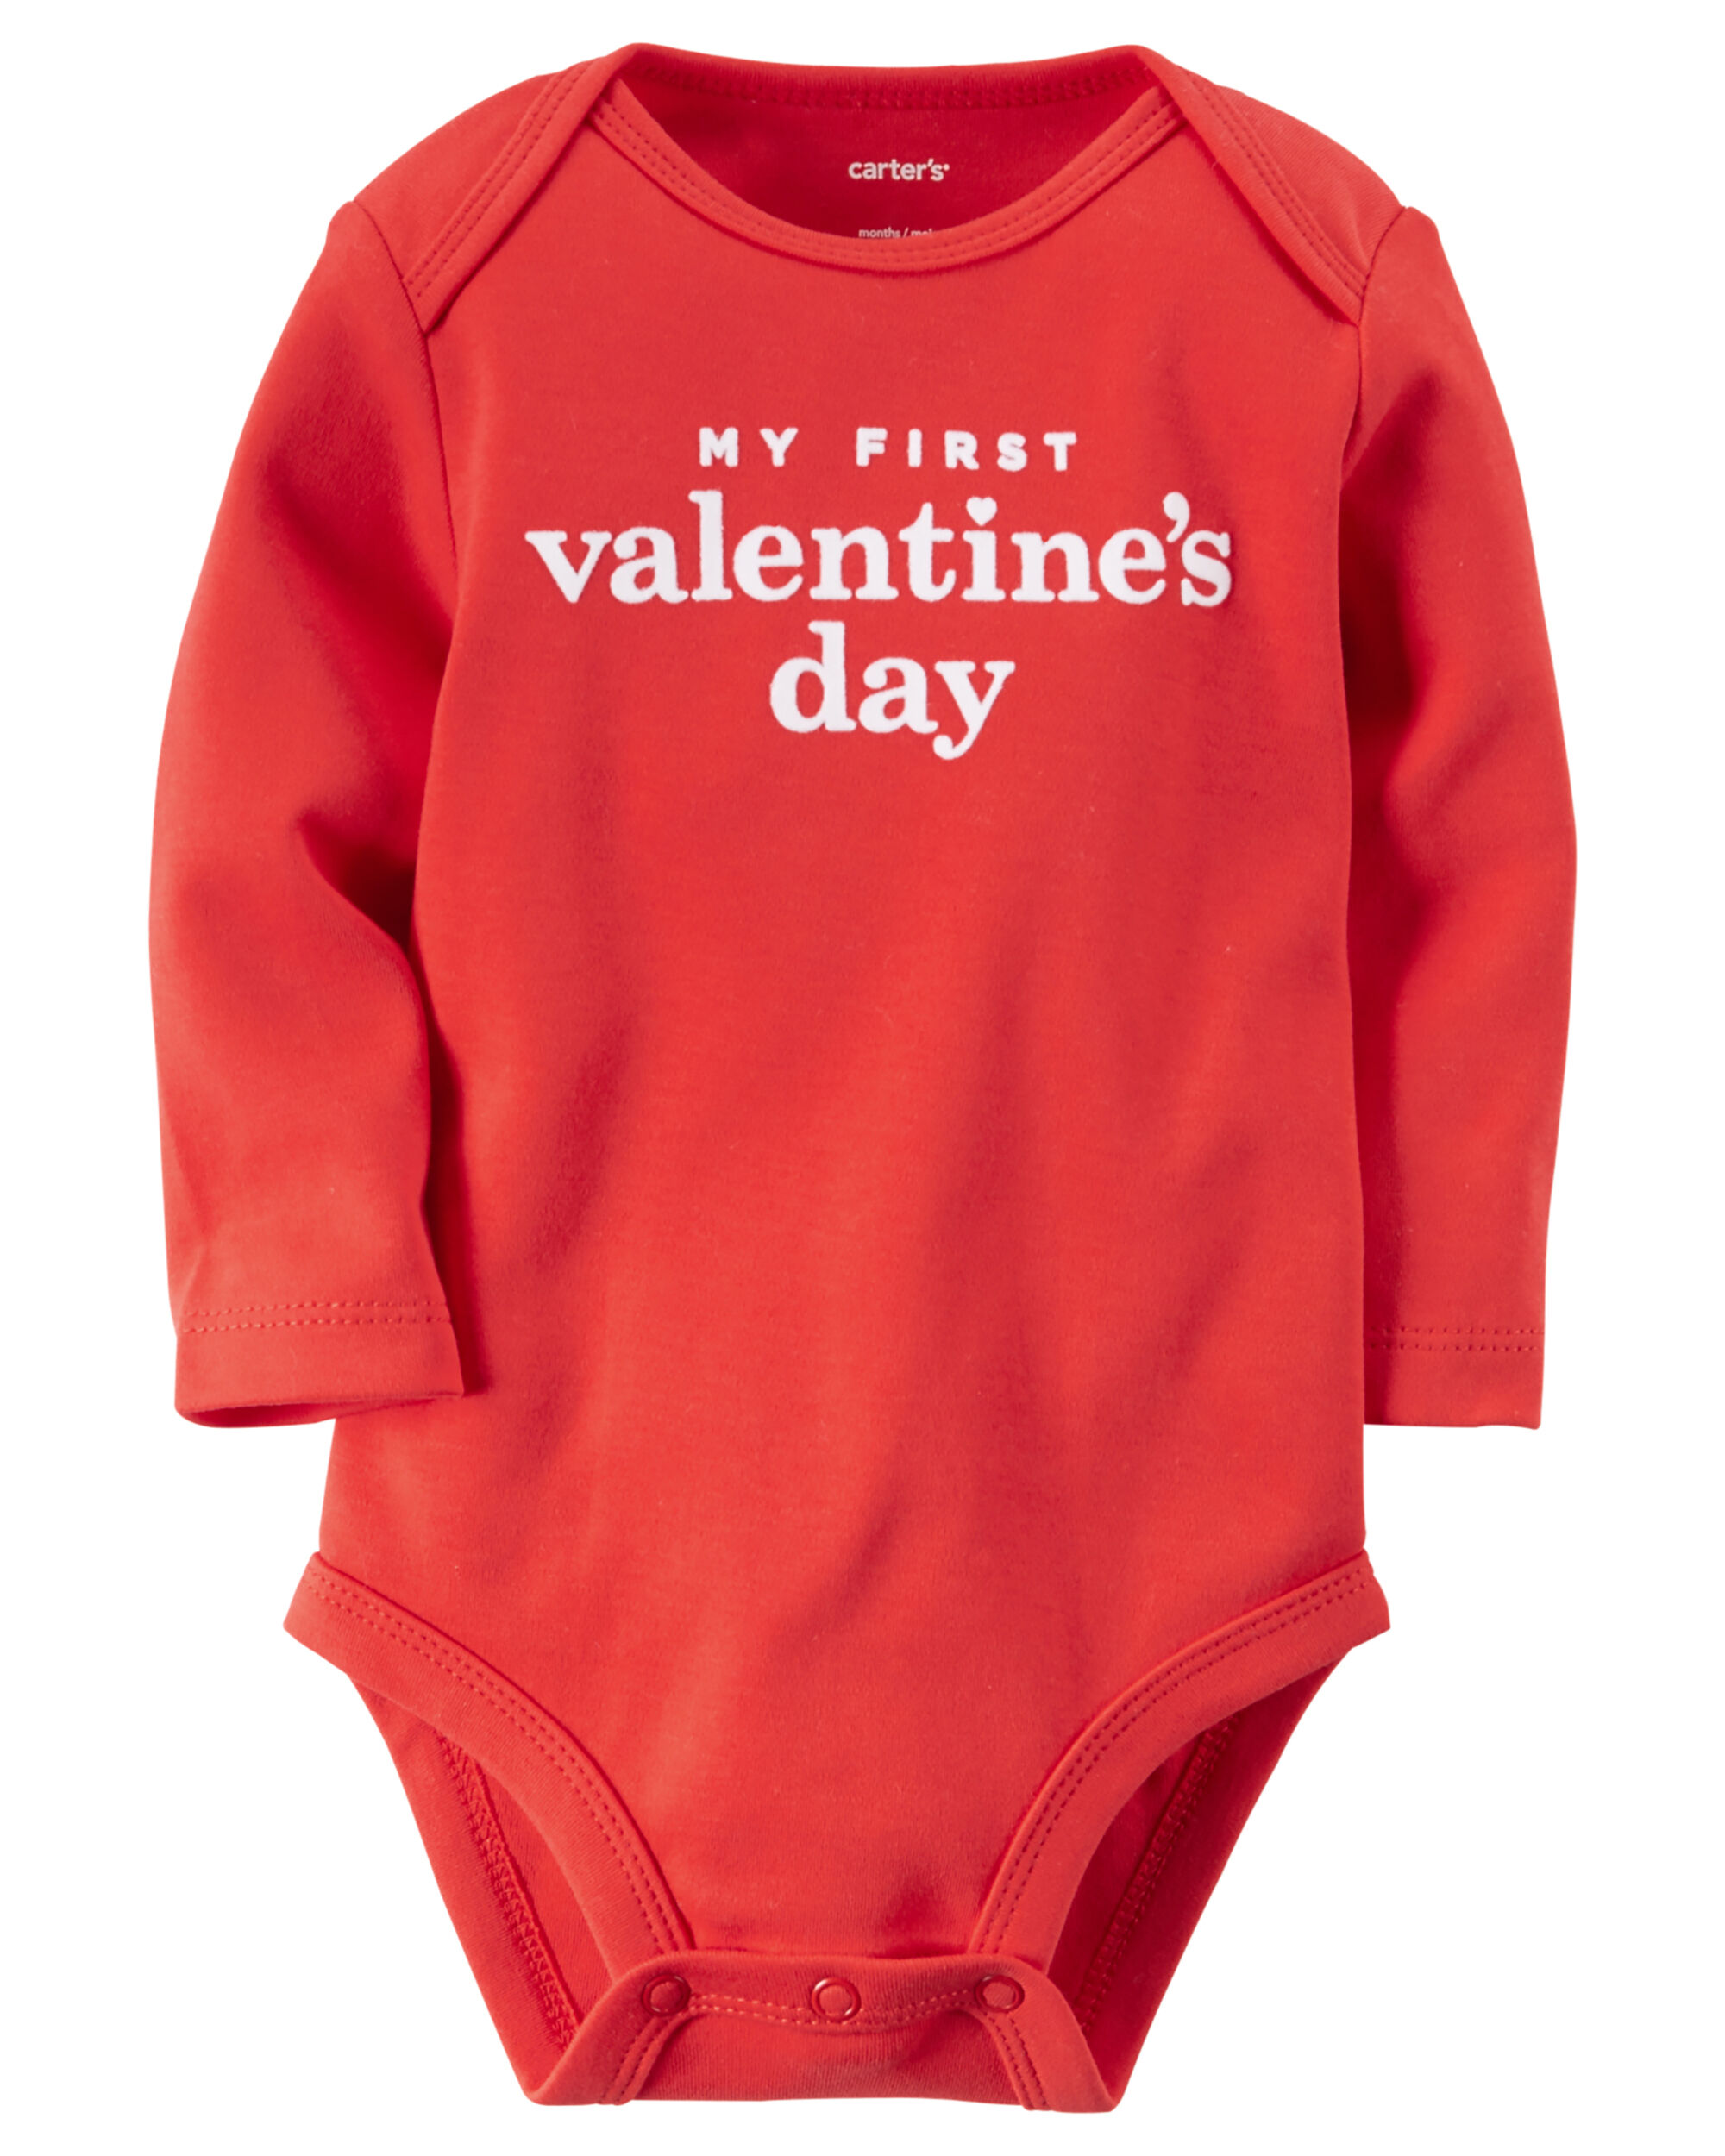 images my first valentines day bodysuit - First Valentines Day